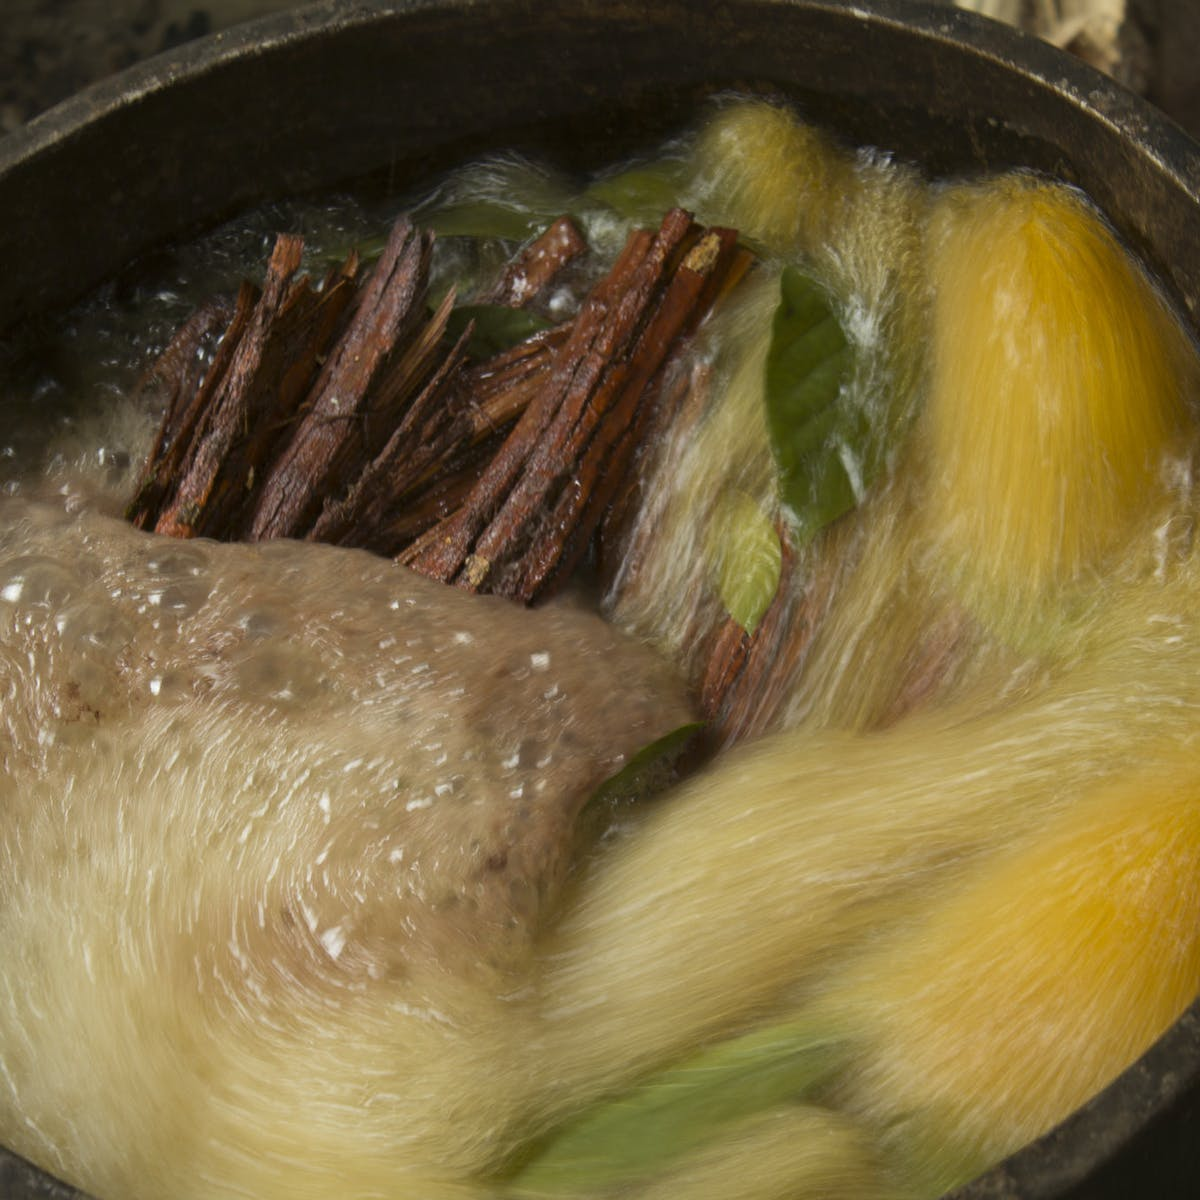 Weekly Dose: ayahuasca, a cautionary tale for tourists eager